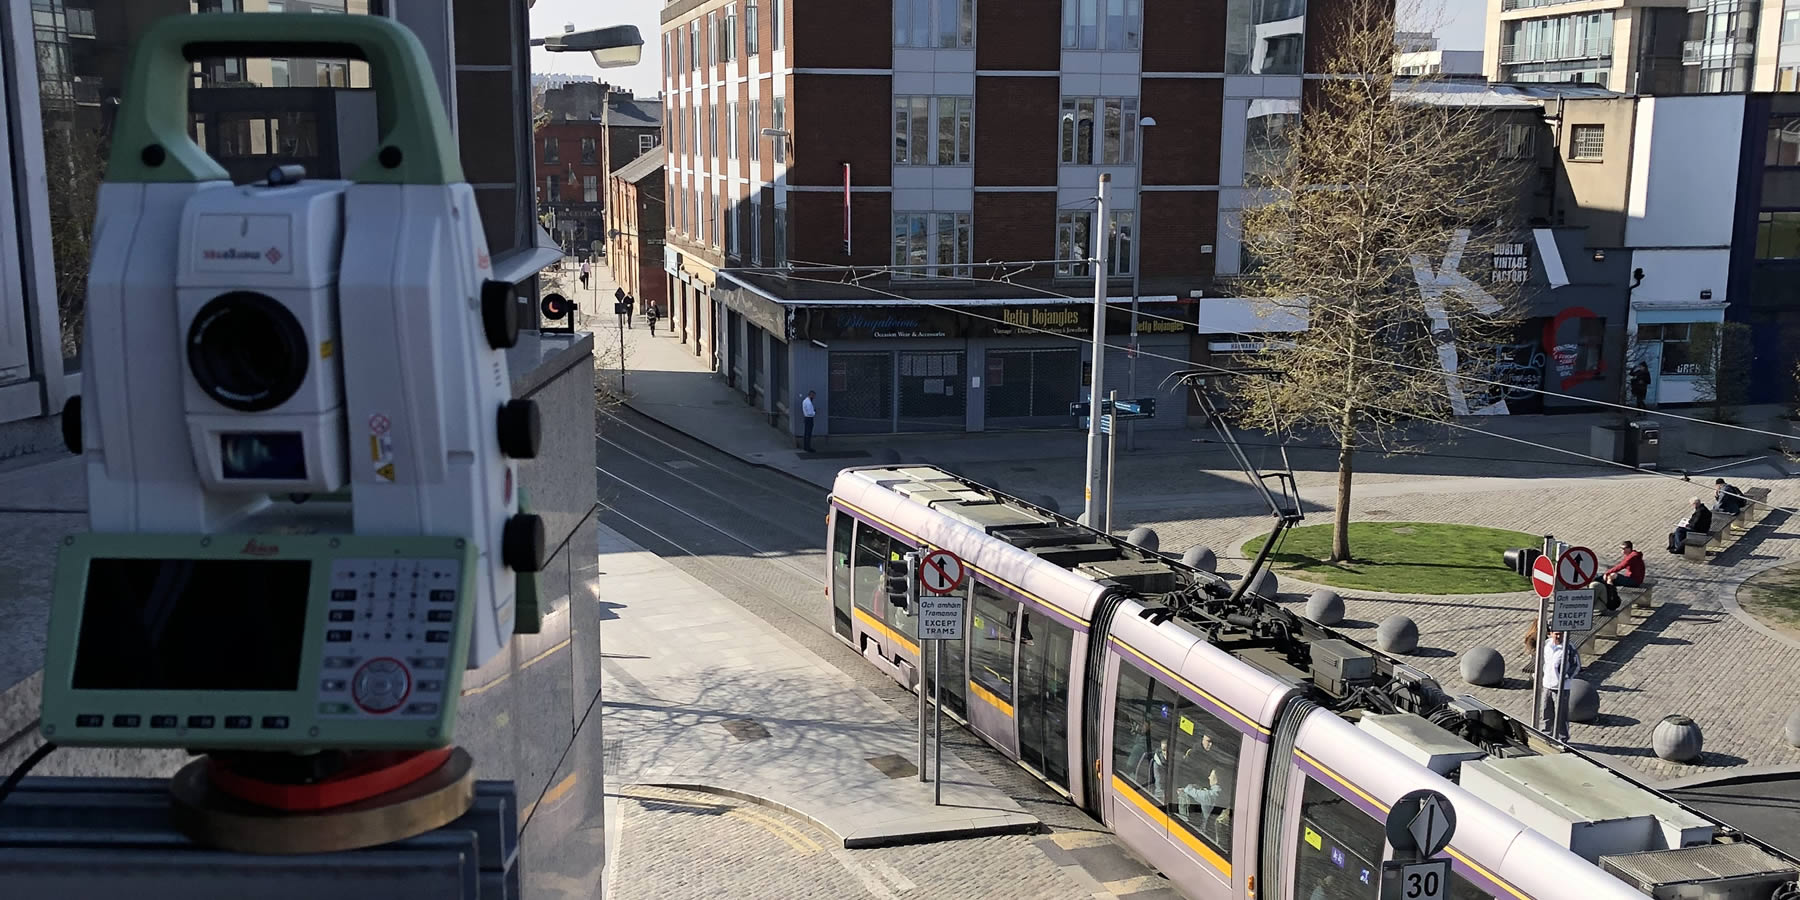 Luas Monitoring at Smithfield Images